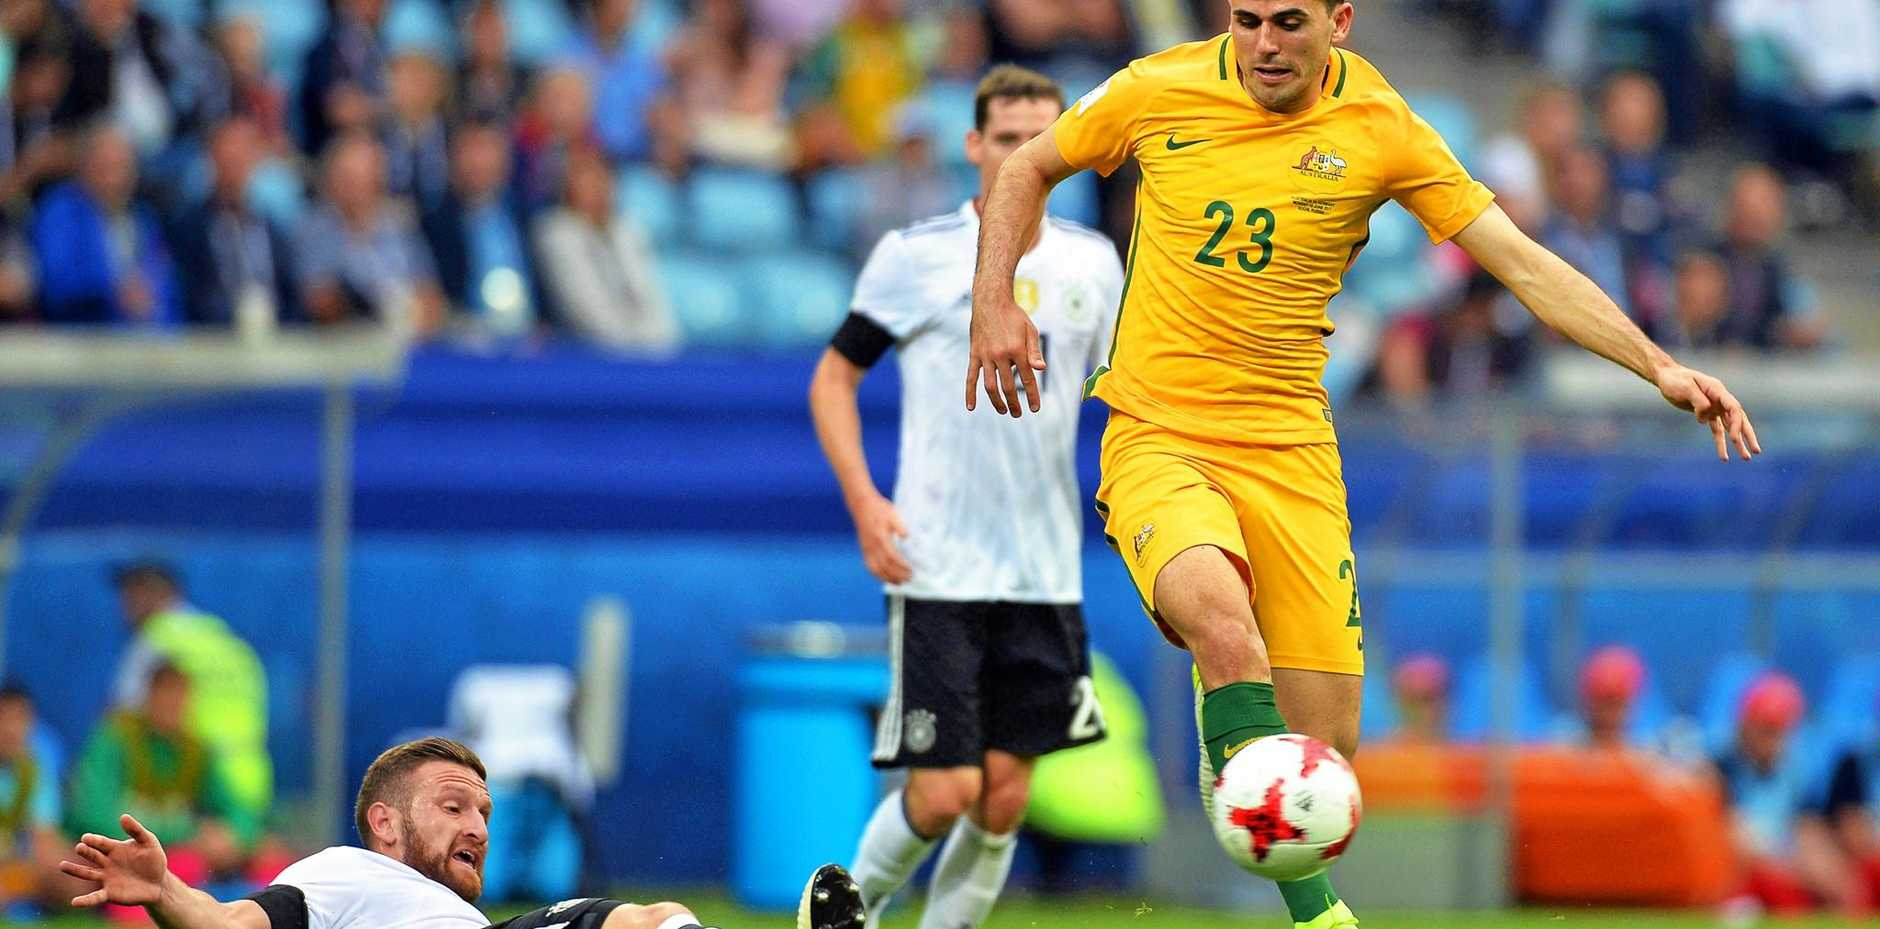 Australia's Tommy Rogic leavees Germany's Shkodran Mustafi in his wake duirng their FIFA Confederations Cup opener in Sochi.